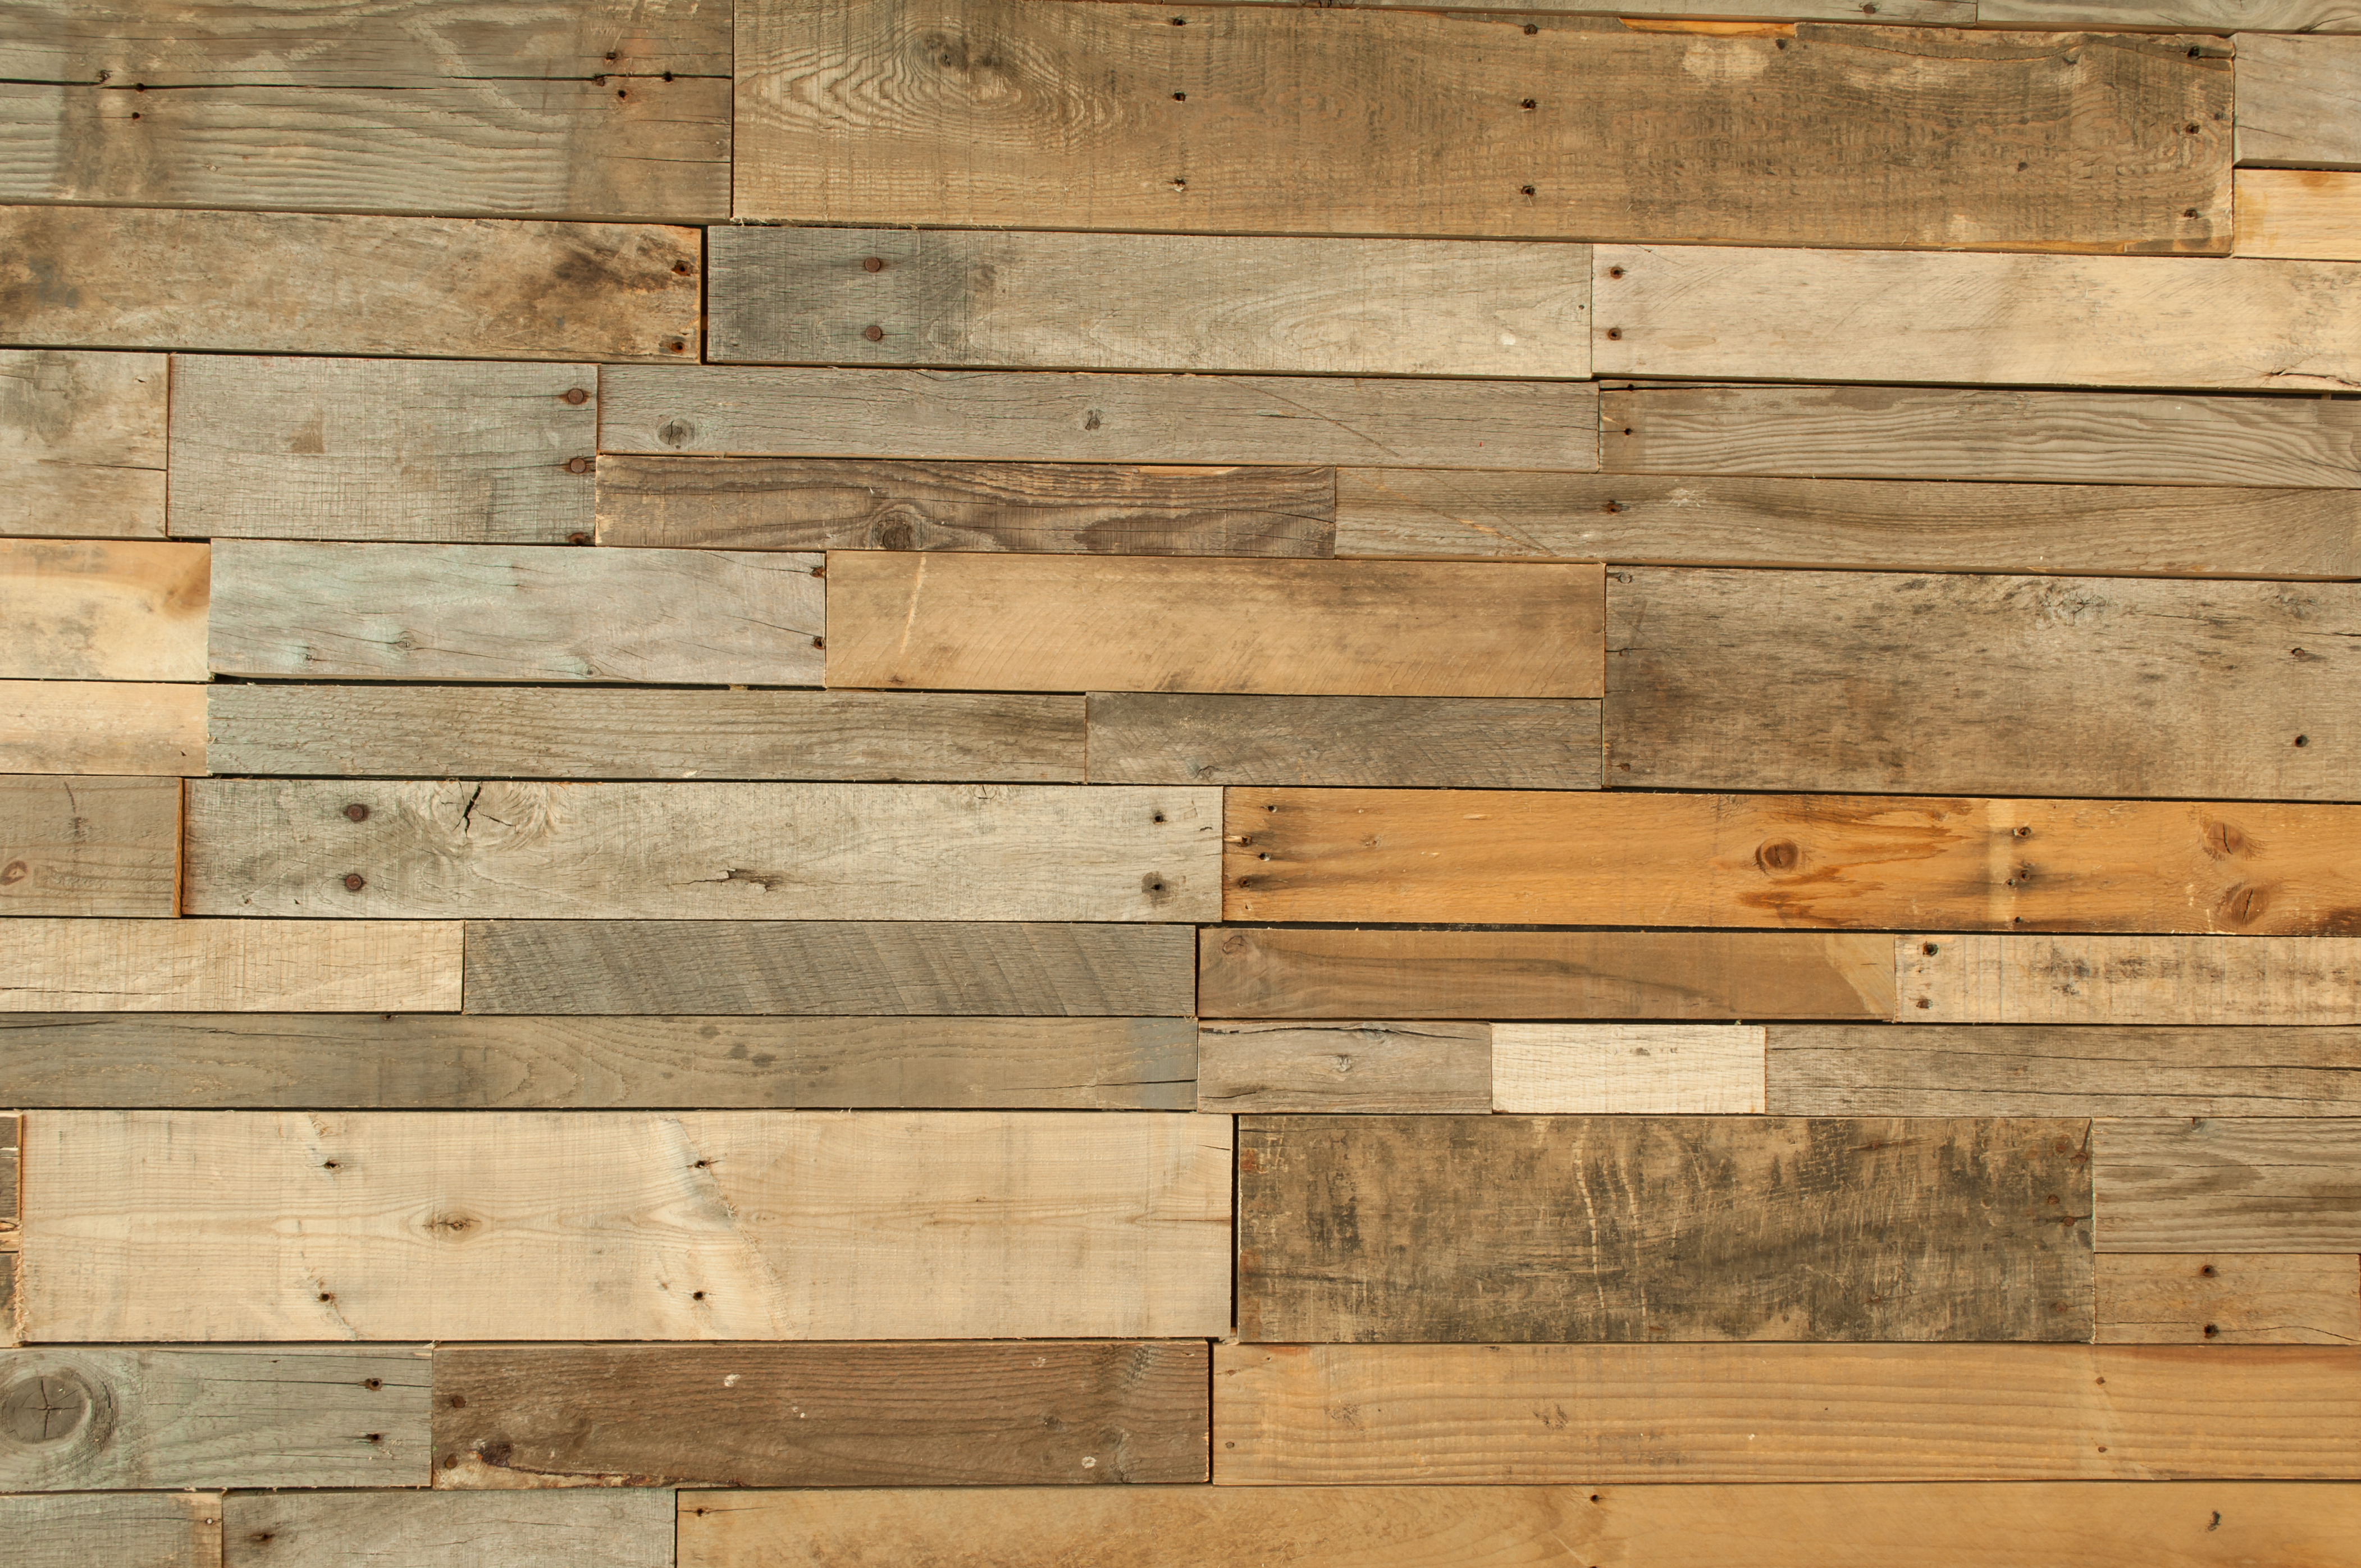 Pre fab Wood Wall Panels   Sustainable Lumber Company 4205x2793